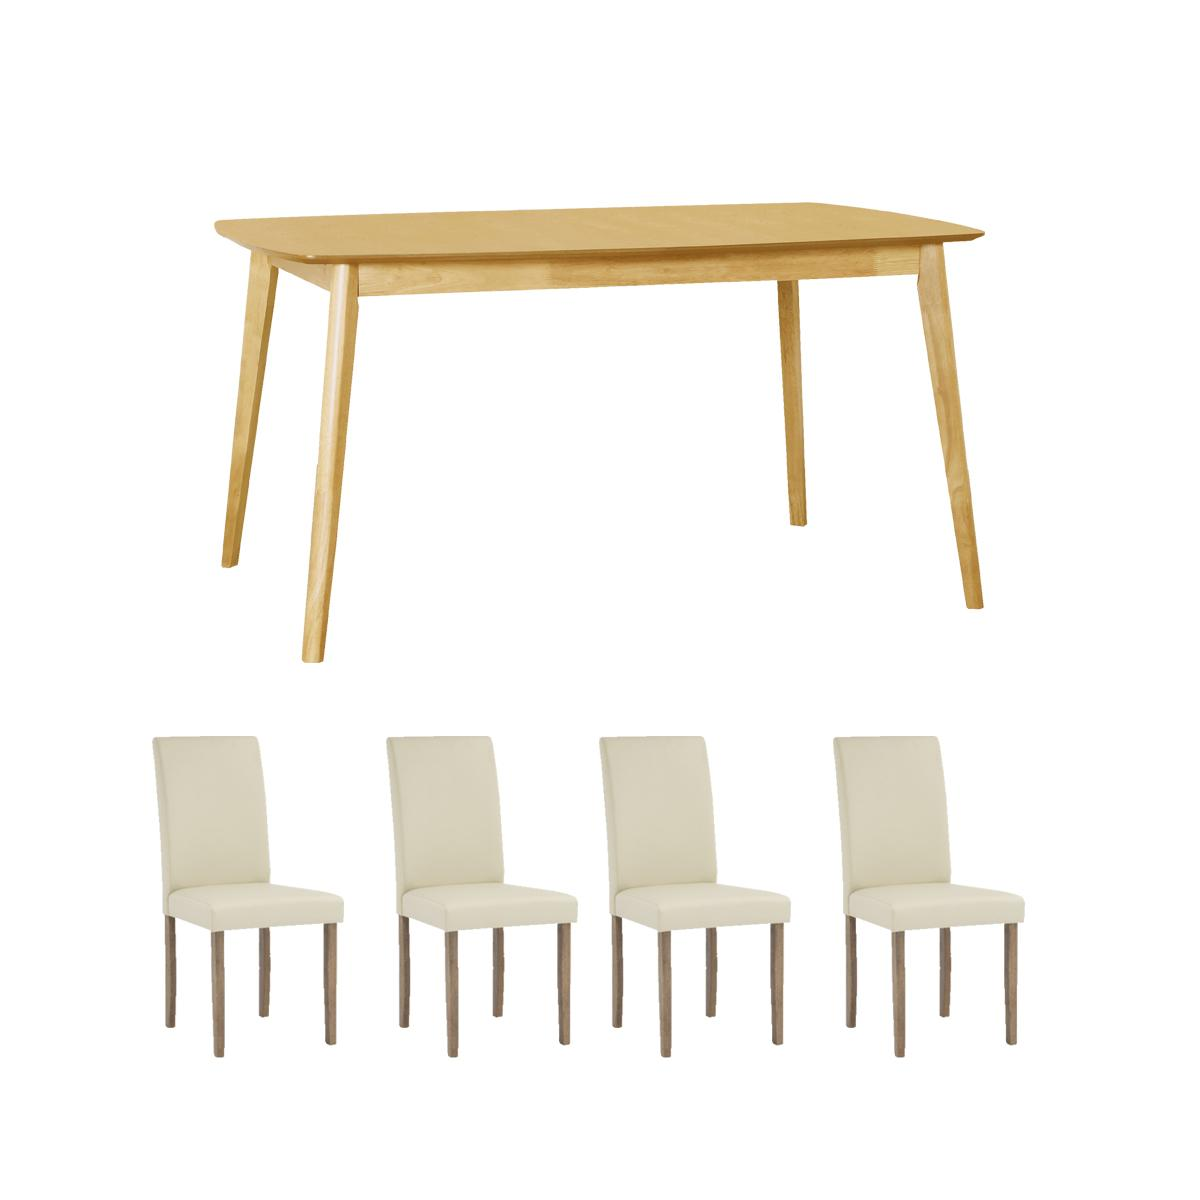 Solid Wood 1.2m Dining Table + 4 Dining Chair. Quality Dining Set with Free Delivery